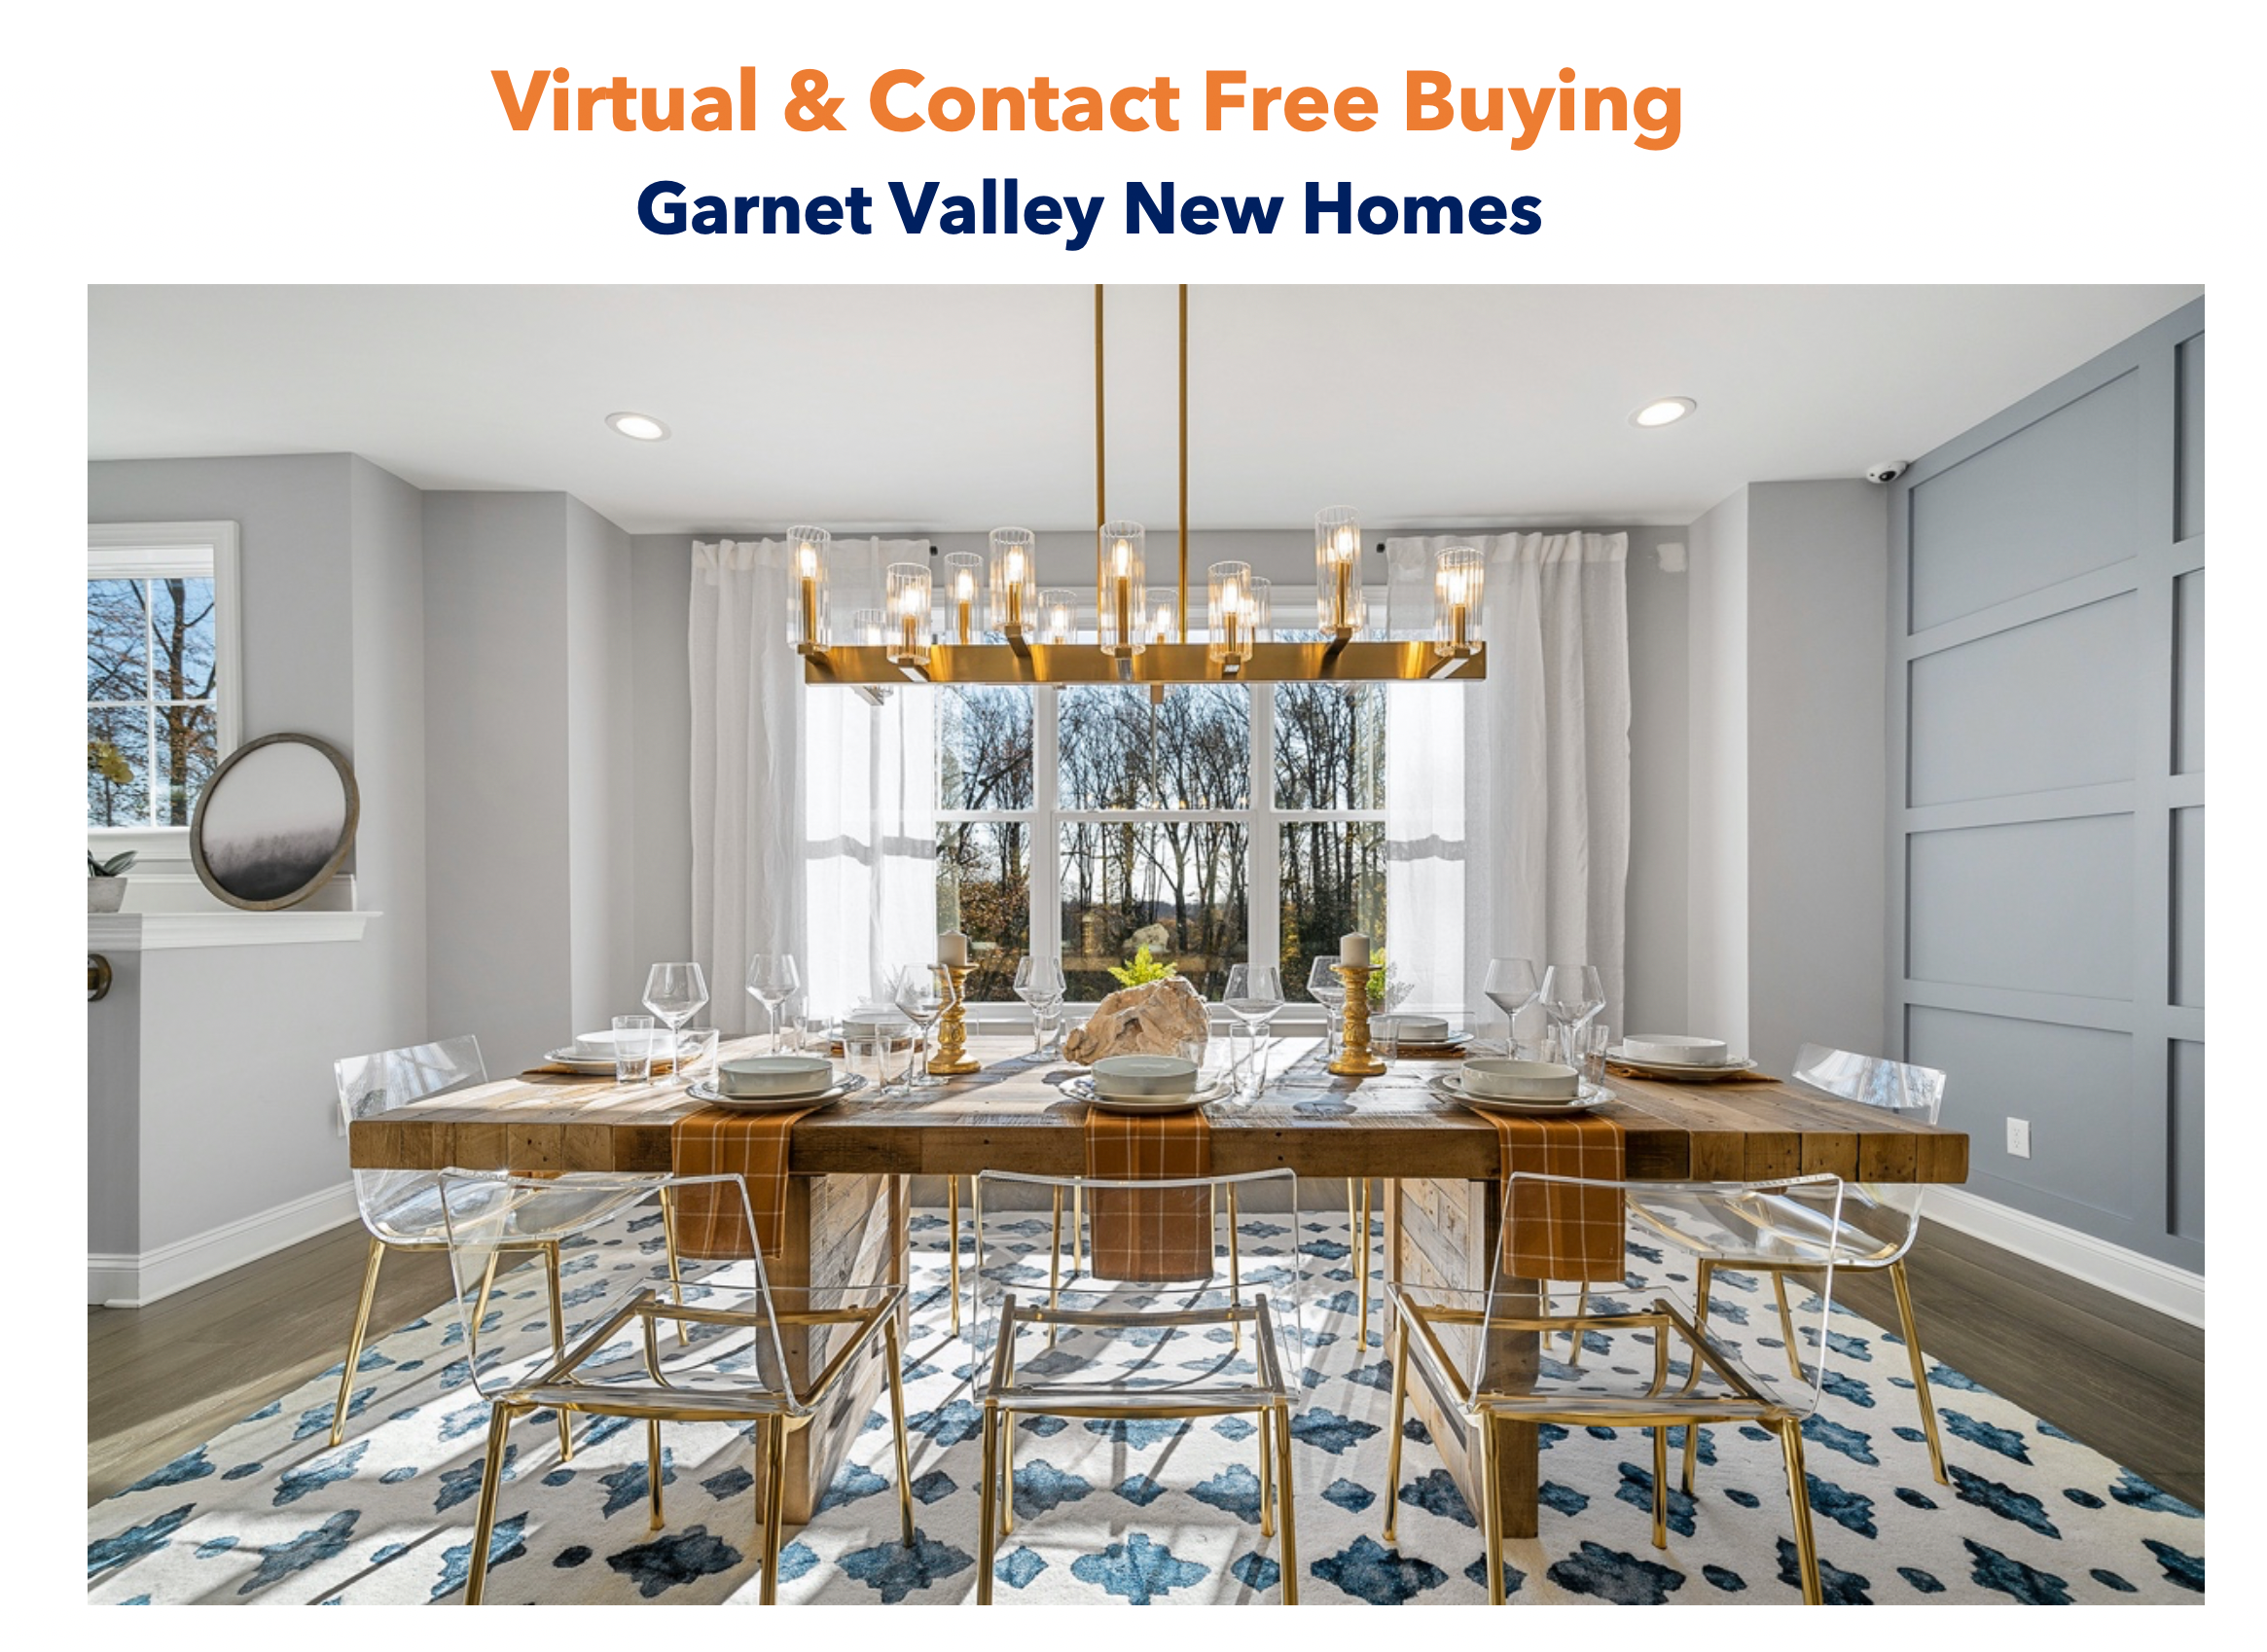 Contact Free / Private Tour